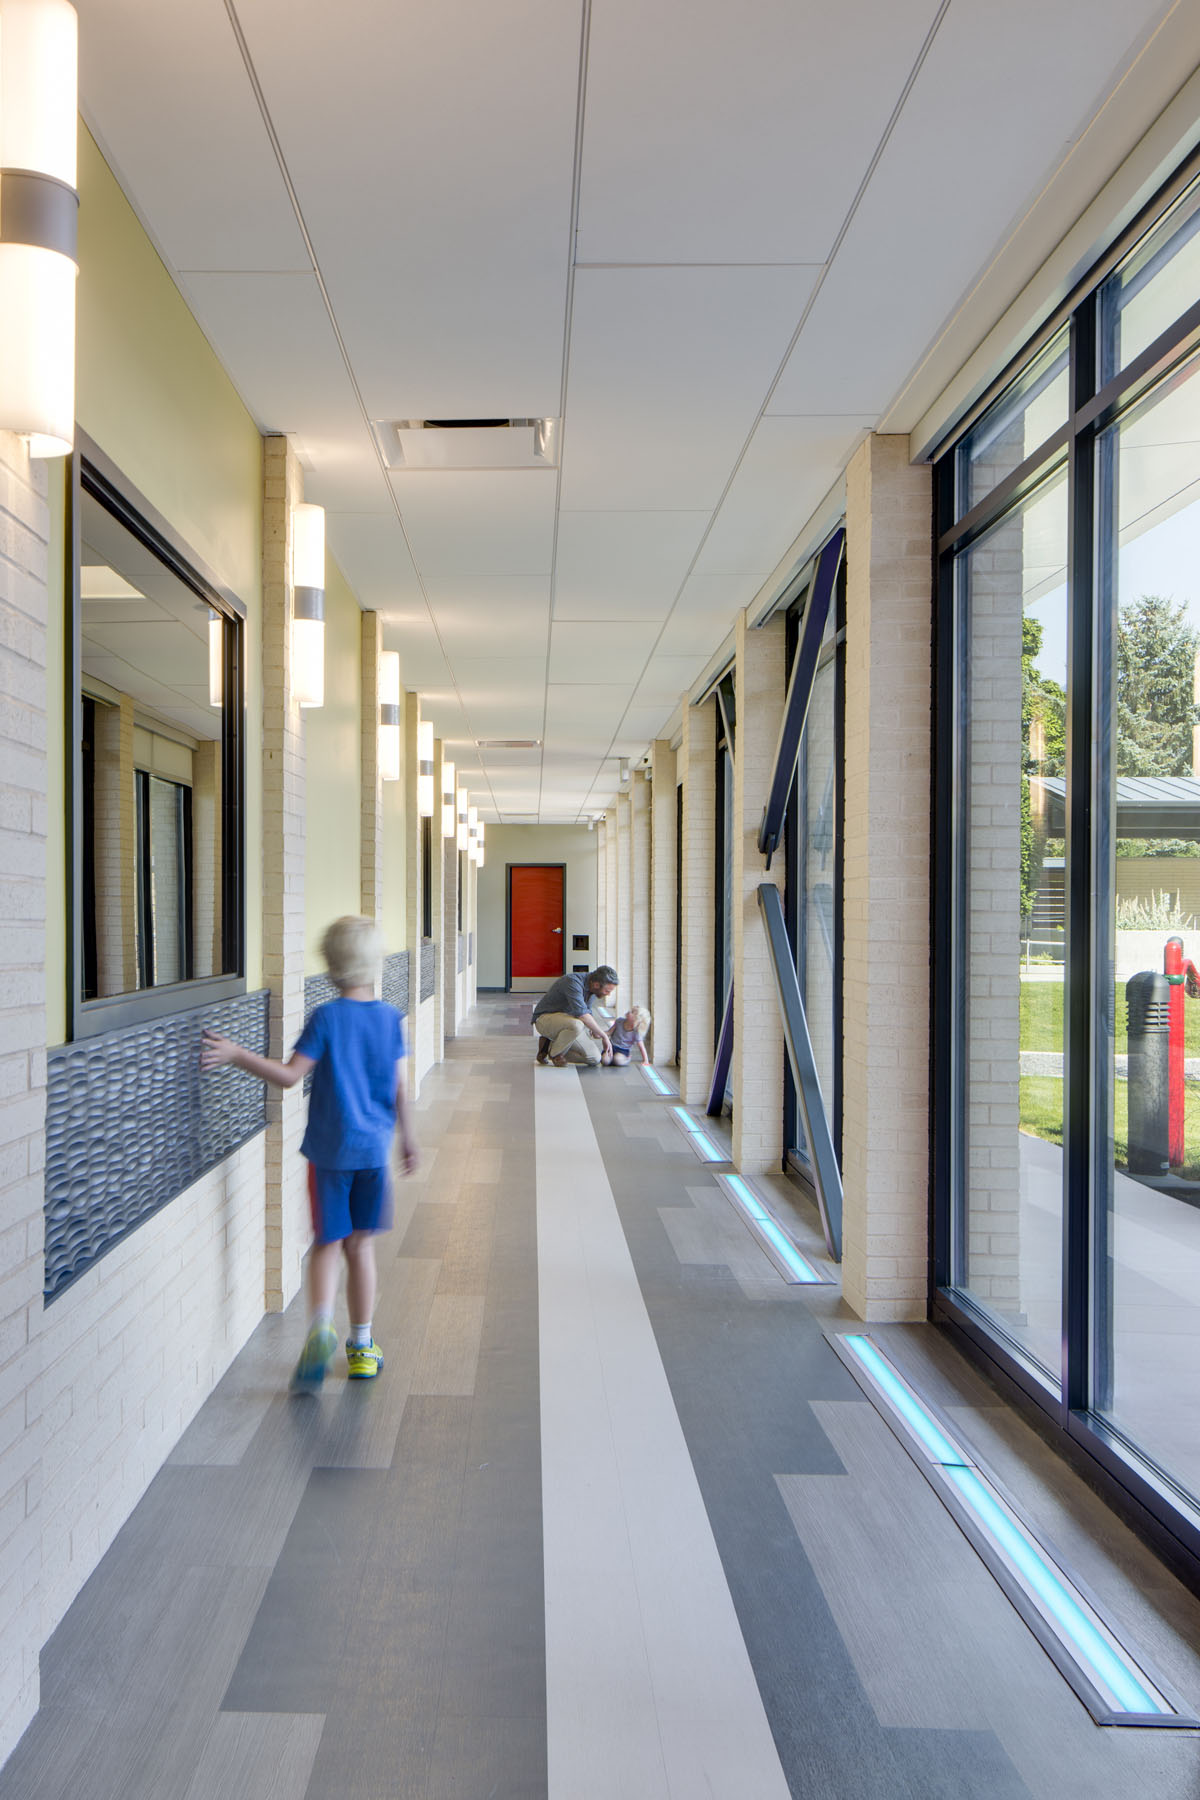 A boy runs his hand along a textured wall panel as a man and girl look at a lighting strip in the floor at the Utah Schools for the Deaf and the Blind Openshaw Education Center.